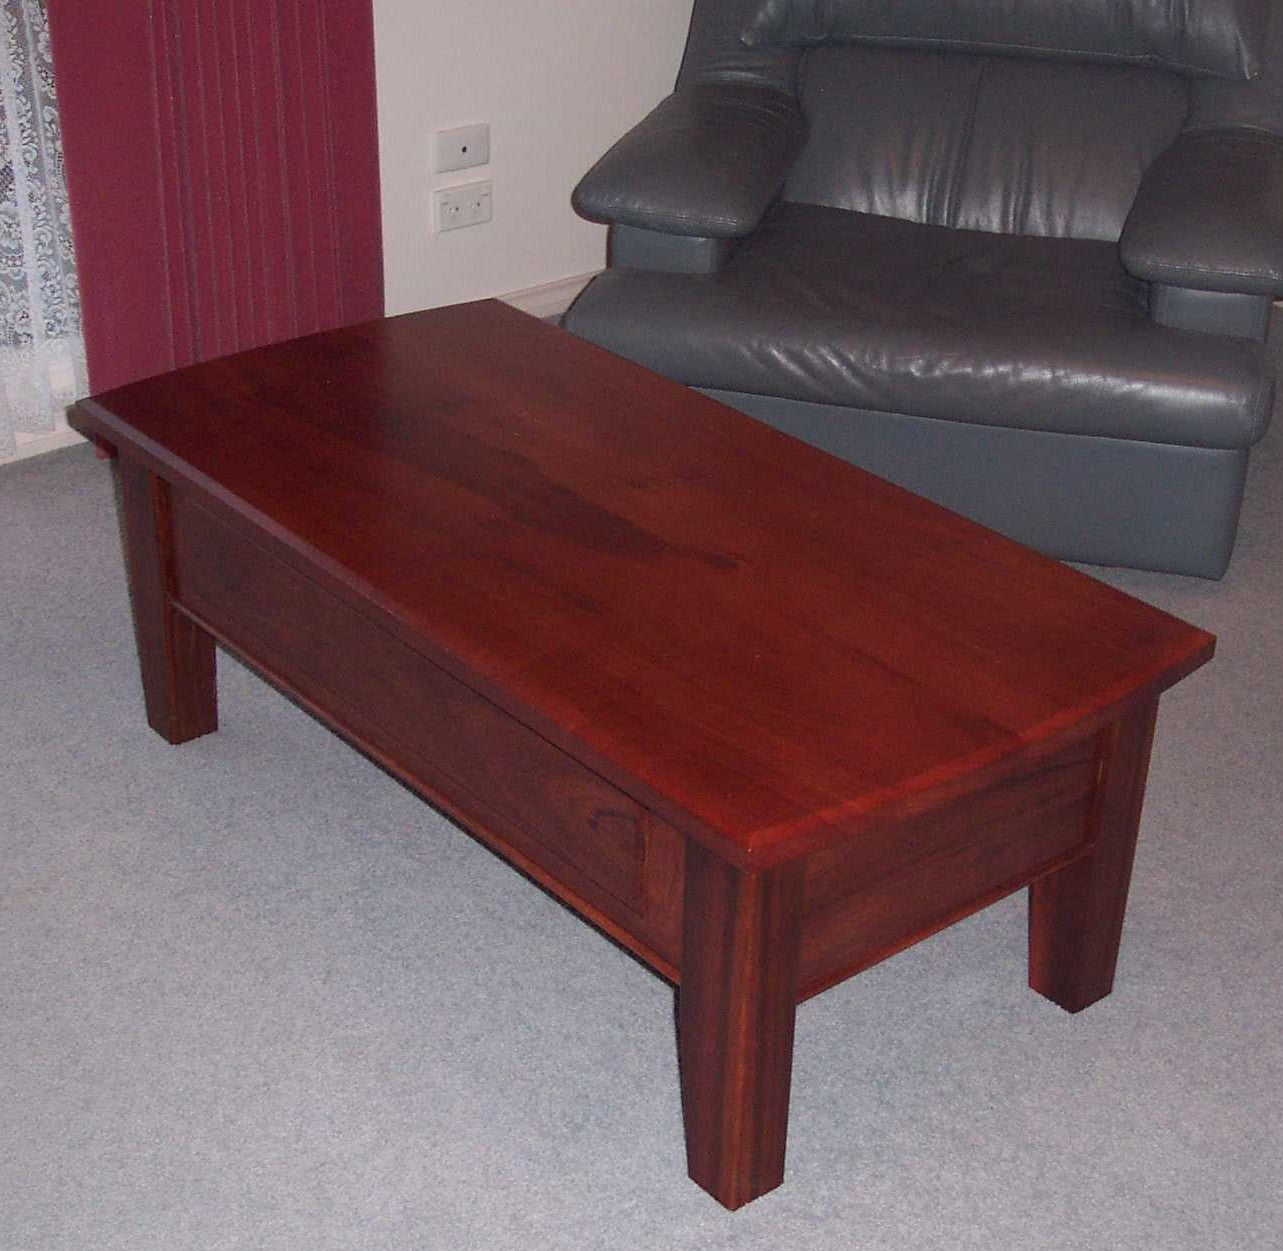 Raglan Coffee Table